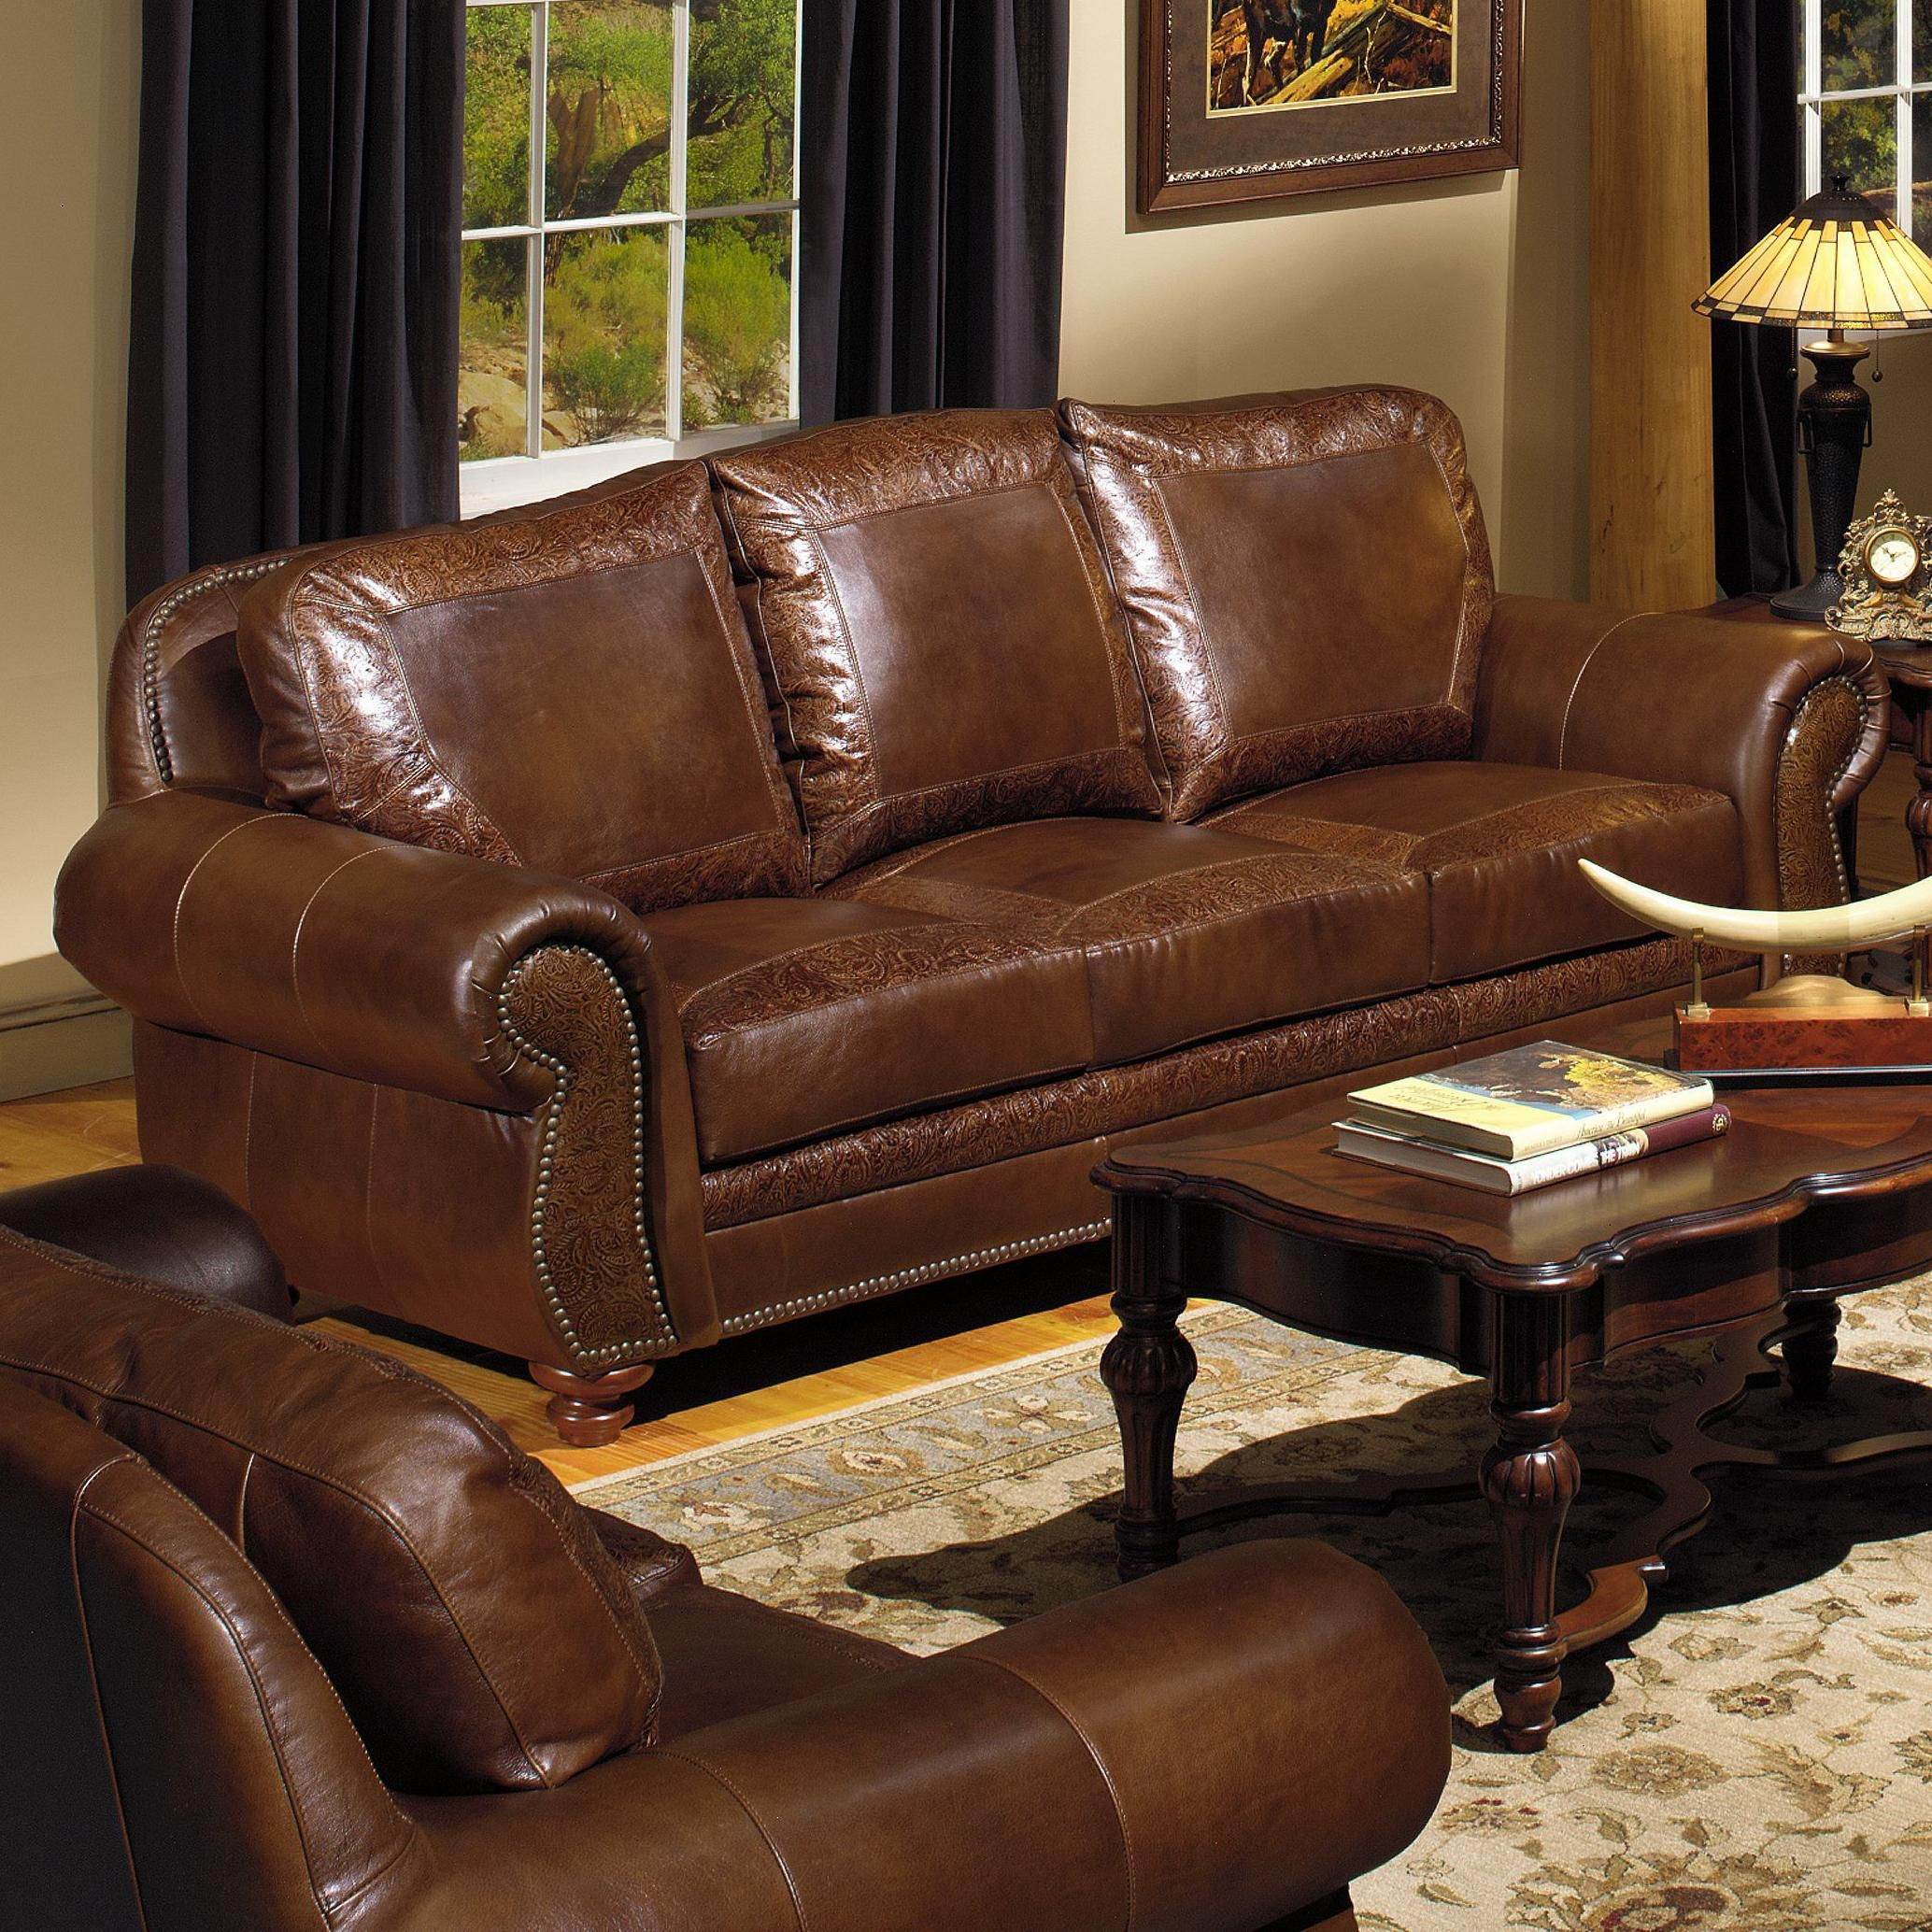 Traditional Living Room Leather Furniture: 8555 Traditional Leather Sofa With Nailhead Trim By USA